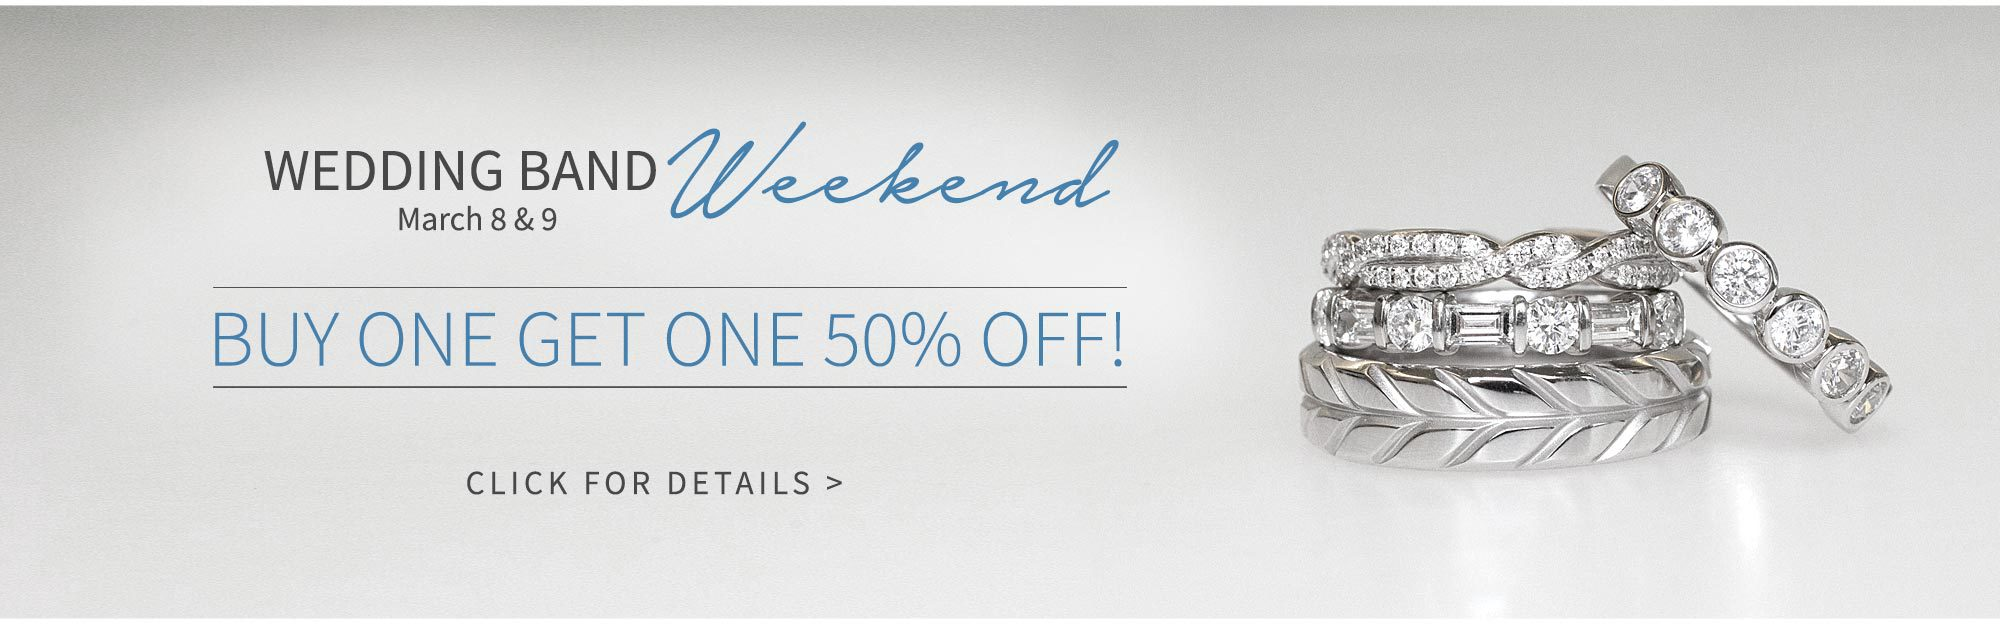 Wedding Band Weekend. March 8 and 9. Buy one get one 50% off. Click for details.